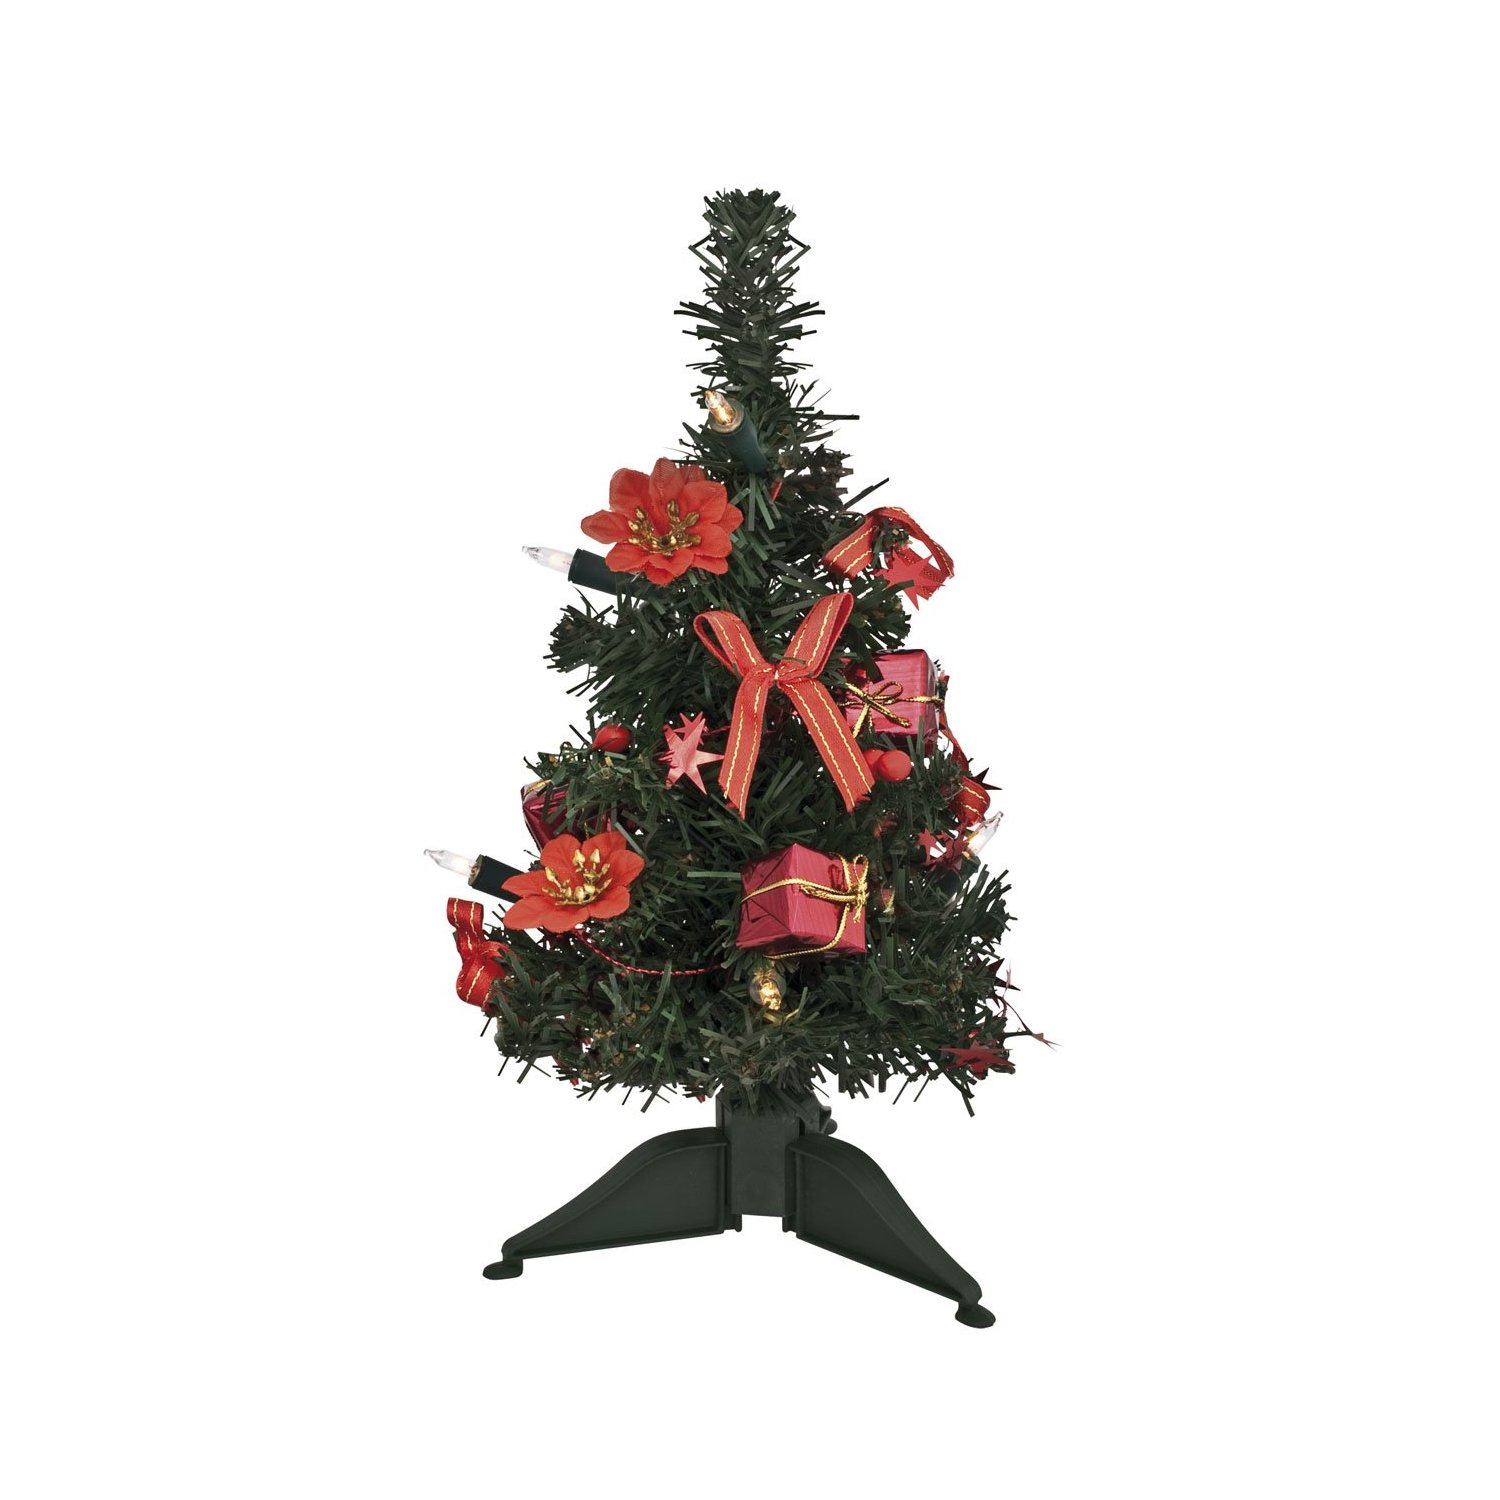 weihnachtsb ume sonstiges mini weihnachtsbaum 30cm komplett geschm ckt mit lichterkette. Black Bedroom Furniture Sets. Home Design Ideas